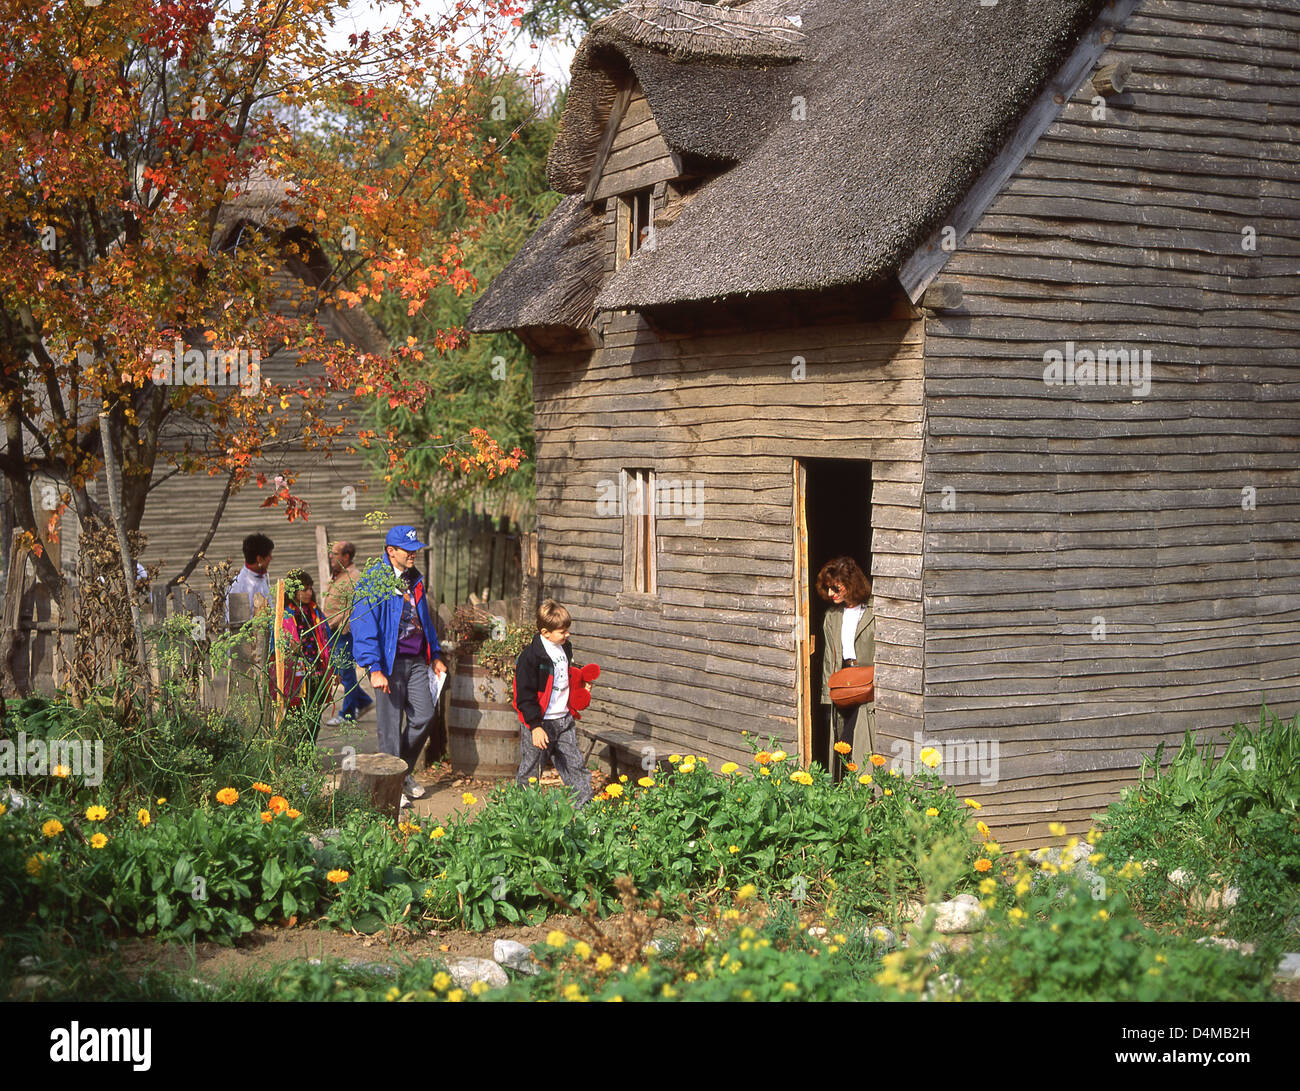 Plymouth Plantation Stock Photos & Plymouth Plantation Stock Images ...